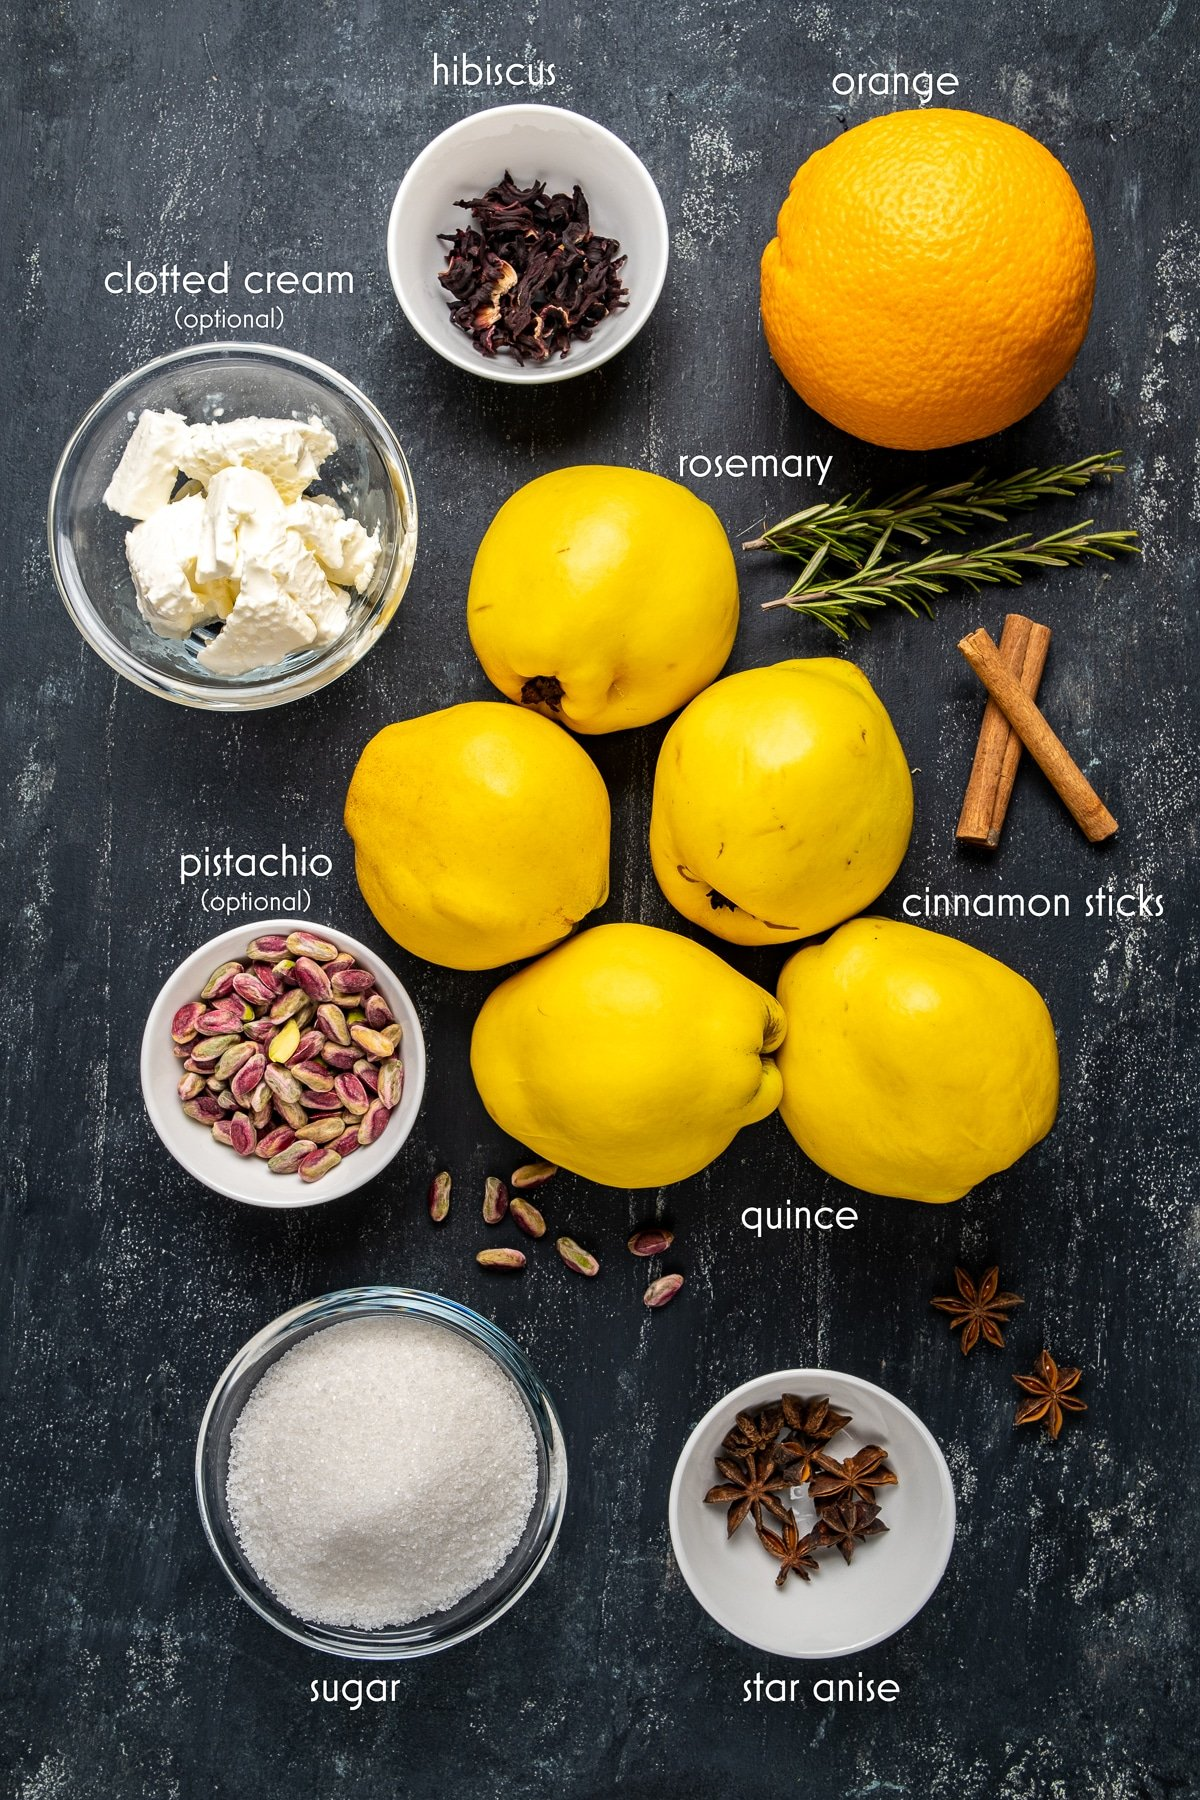 Quinces, cinnamon sticks, rosemary sprigs, orange, sugar, pistachio, hibiscus, star anise, clotted cream are all on a dark background.